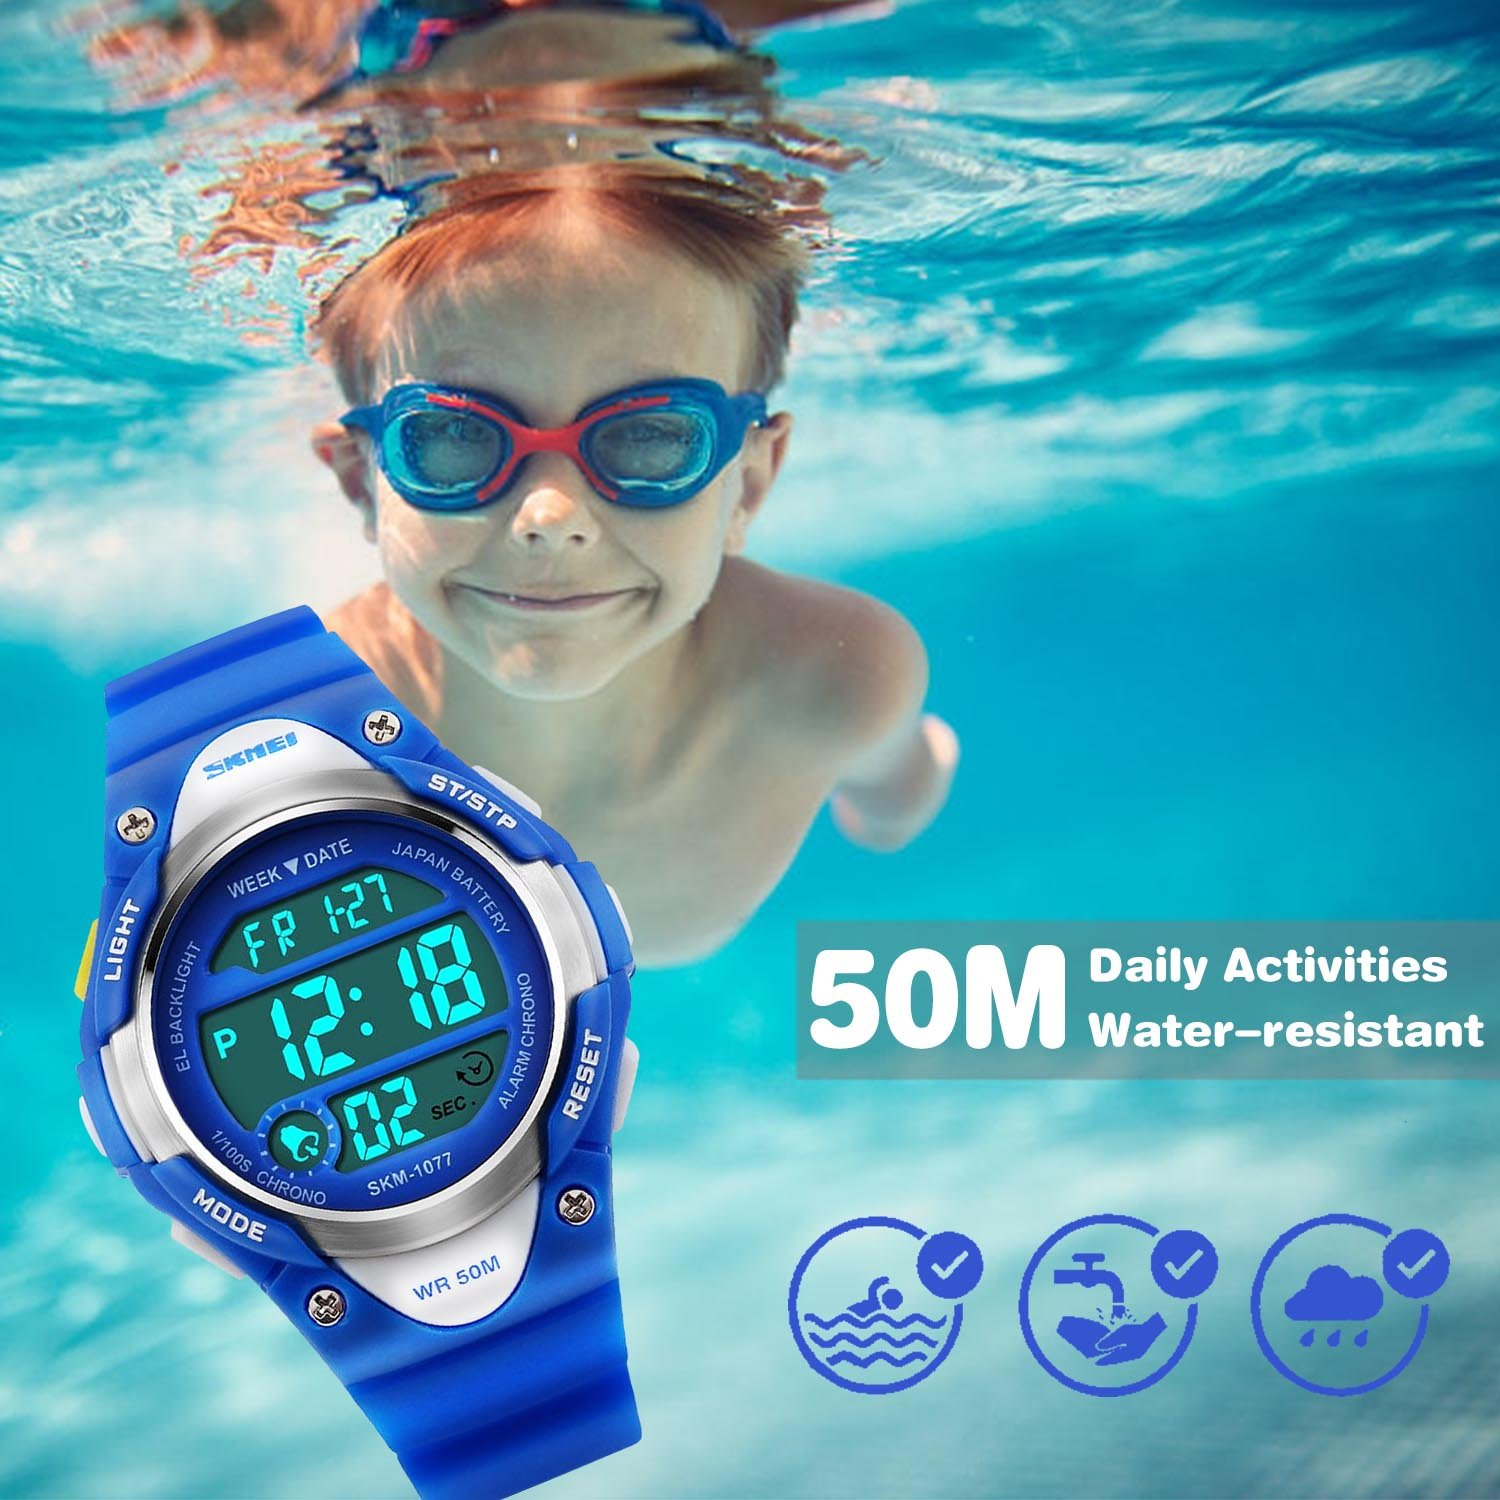 Boys Sport Digital Watch, Kids Outdoor Waterproof Electronic Watches with LED Alarm Stopwatch - Blue by cofuo (Image #5)